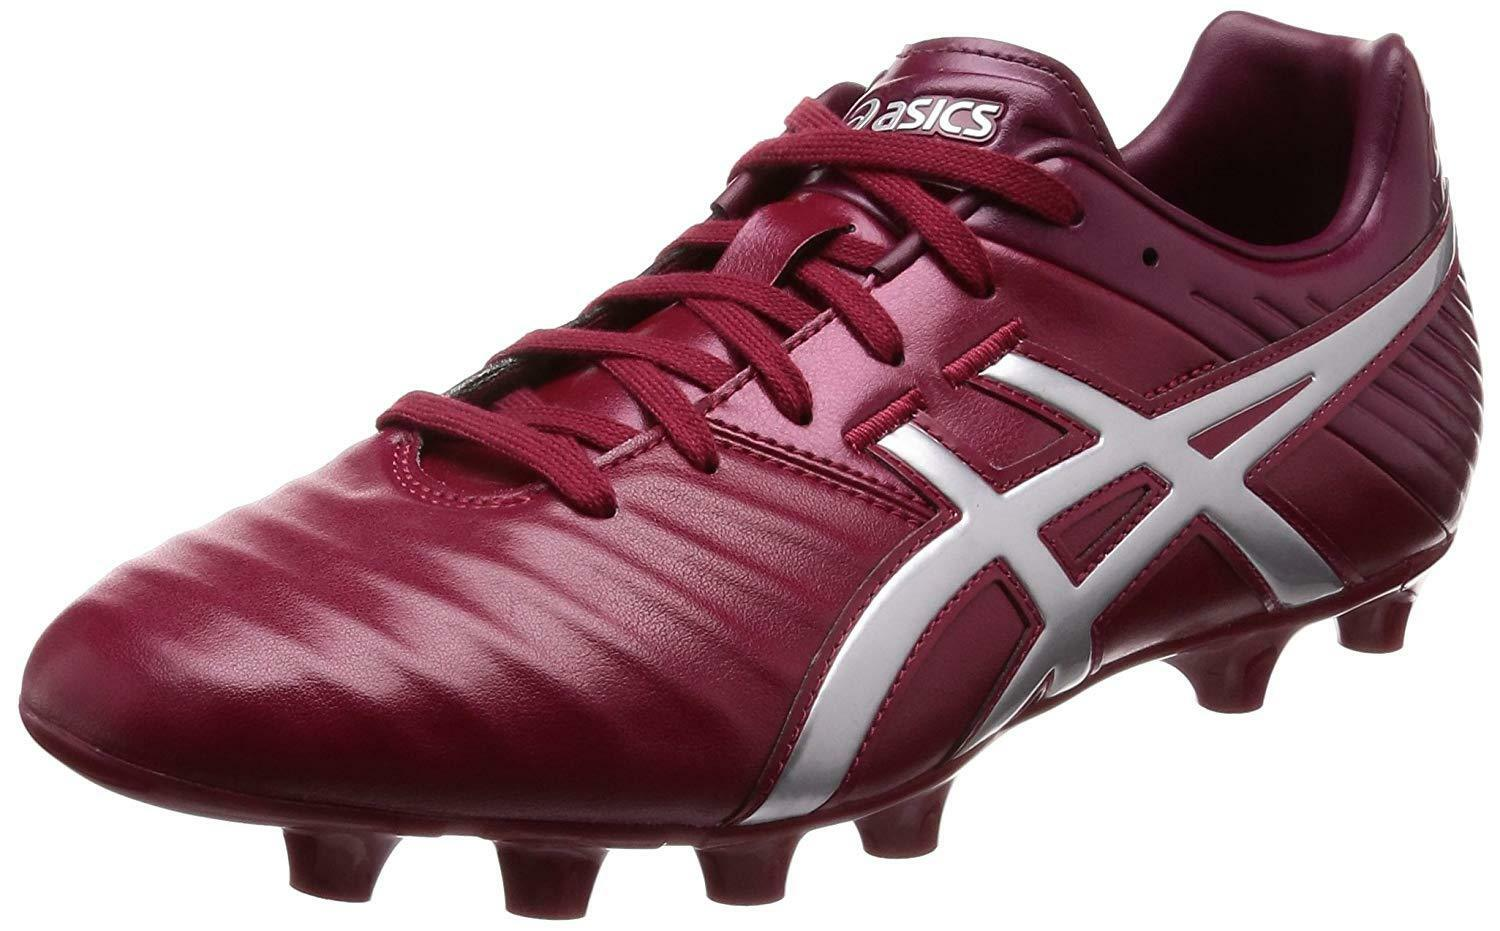 ASICS Soccer Rugby Spike shoes DS LIGHT WD 3 TSI754 Burgundy US10(28cm)